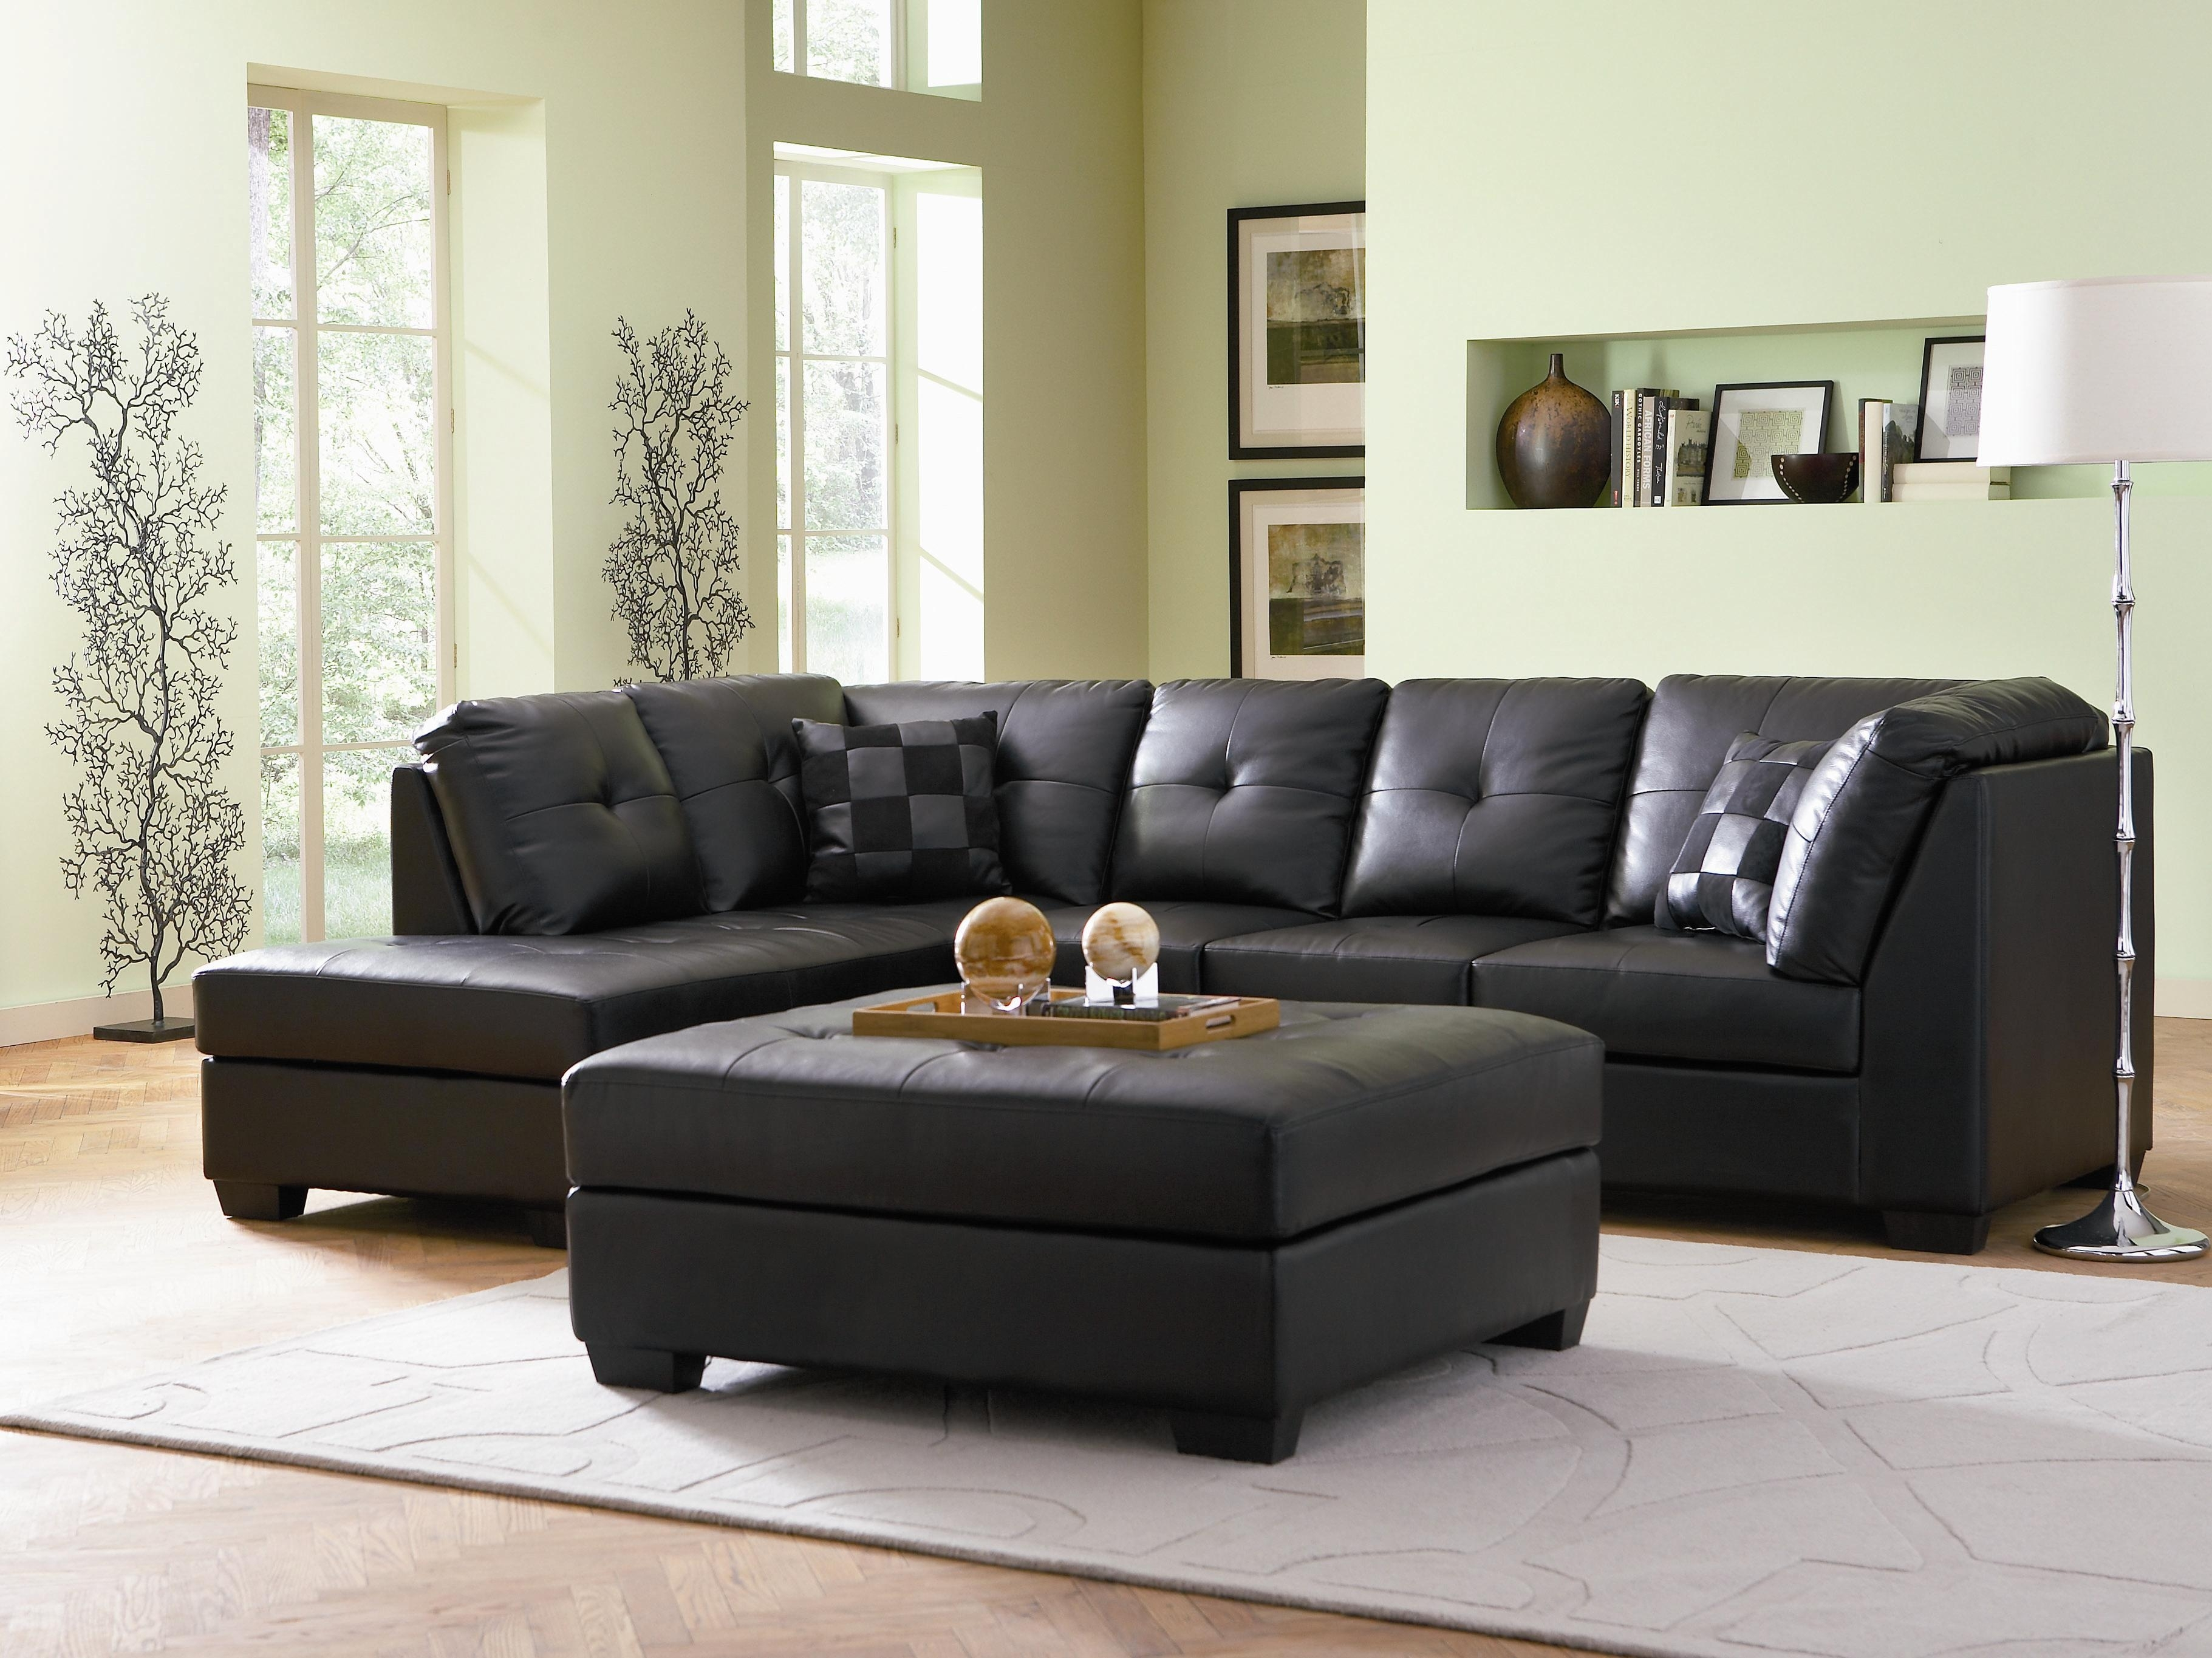 Darie Contemporary Style Black Bonded Leather Sofa Sectional W For Black Leather Sectionals With Ottoman (Image 4 of 10)